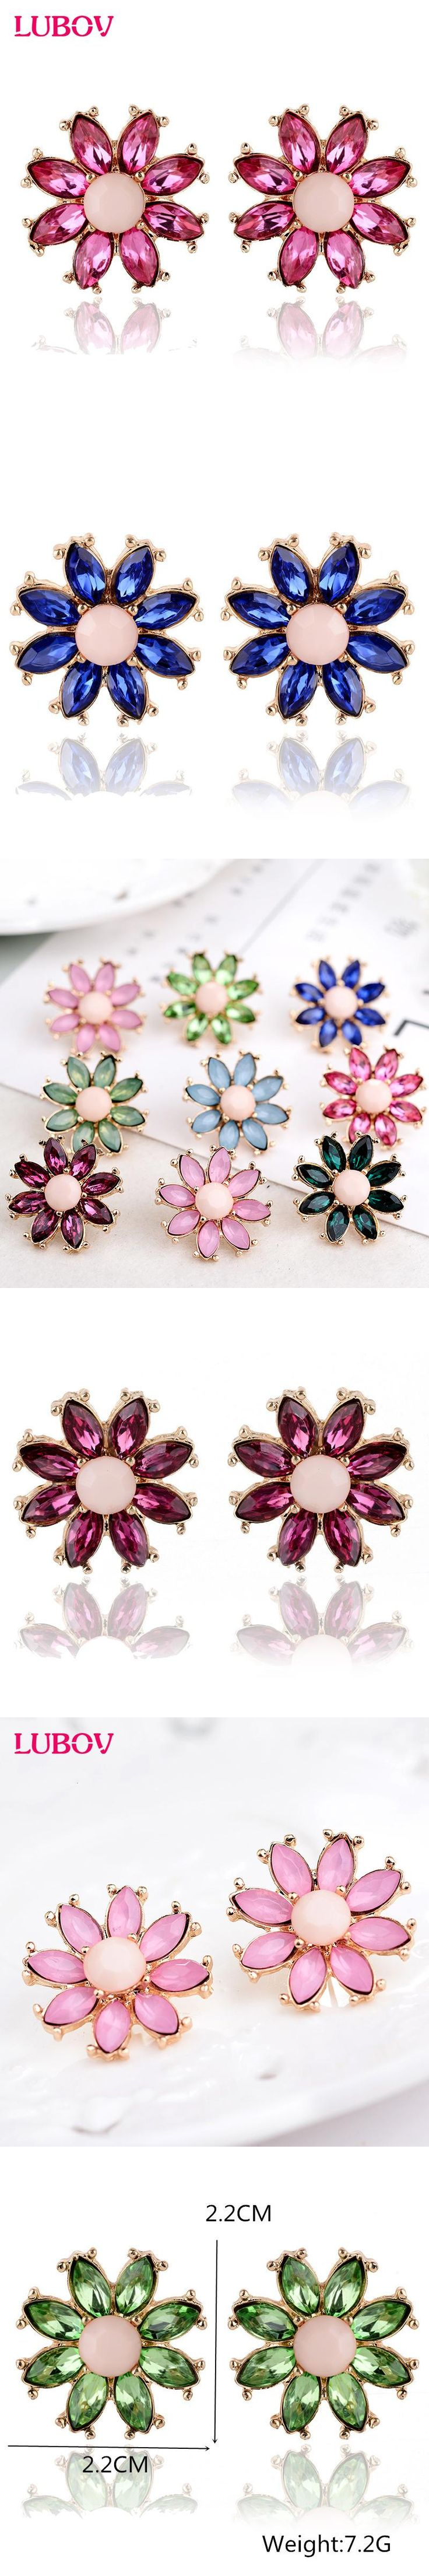 jewellery big img stud earring studs adamar floral diamonds flower scattered diamond